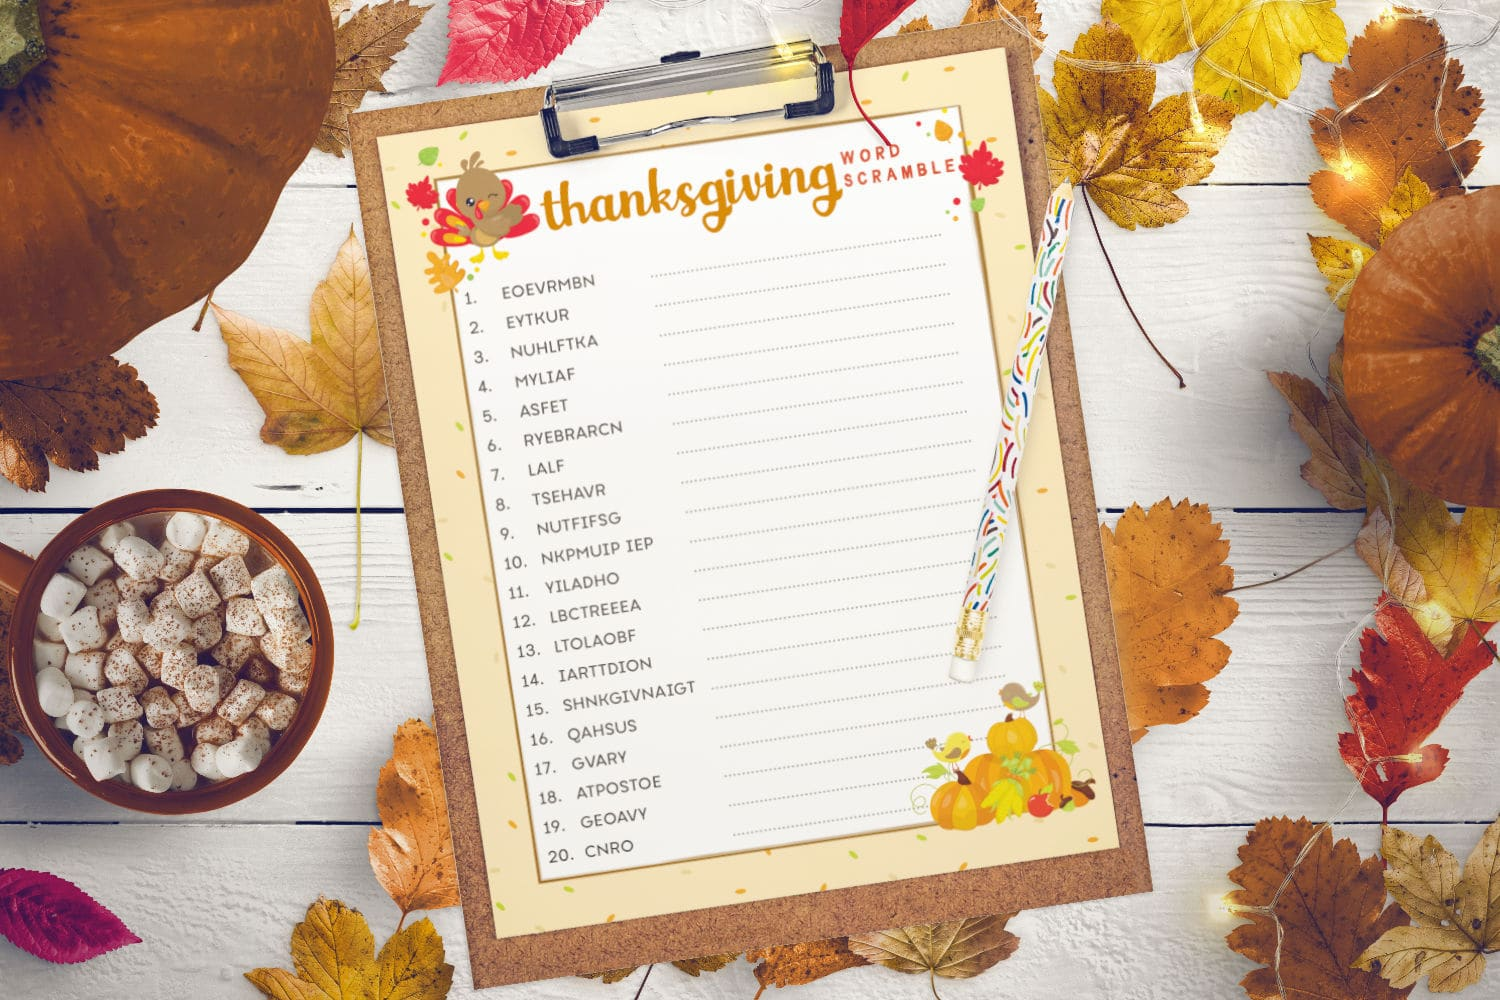 Thanksgiving word scramble activity